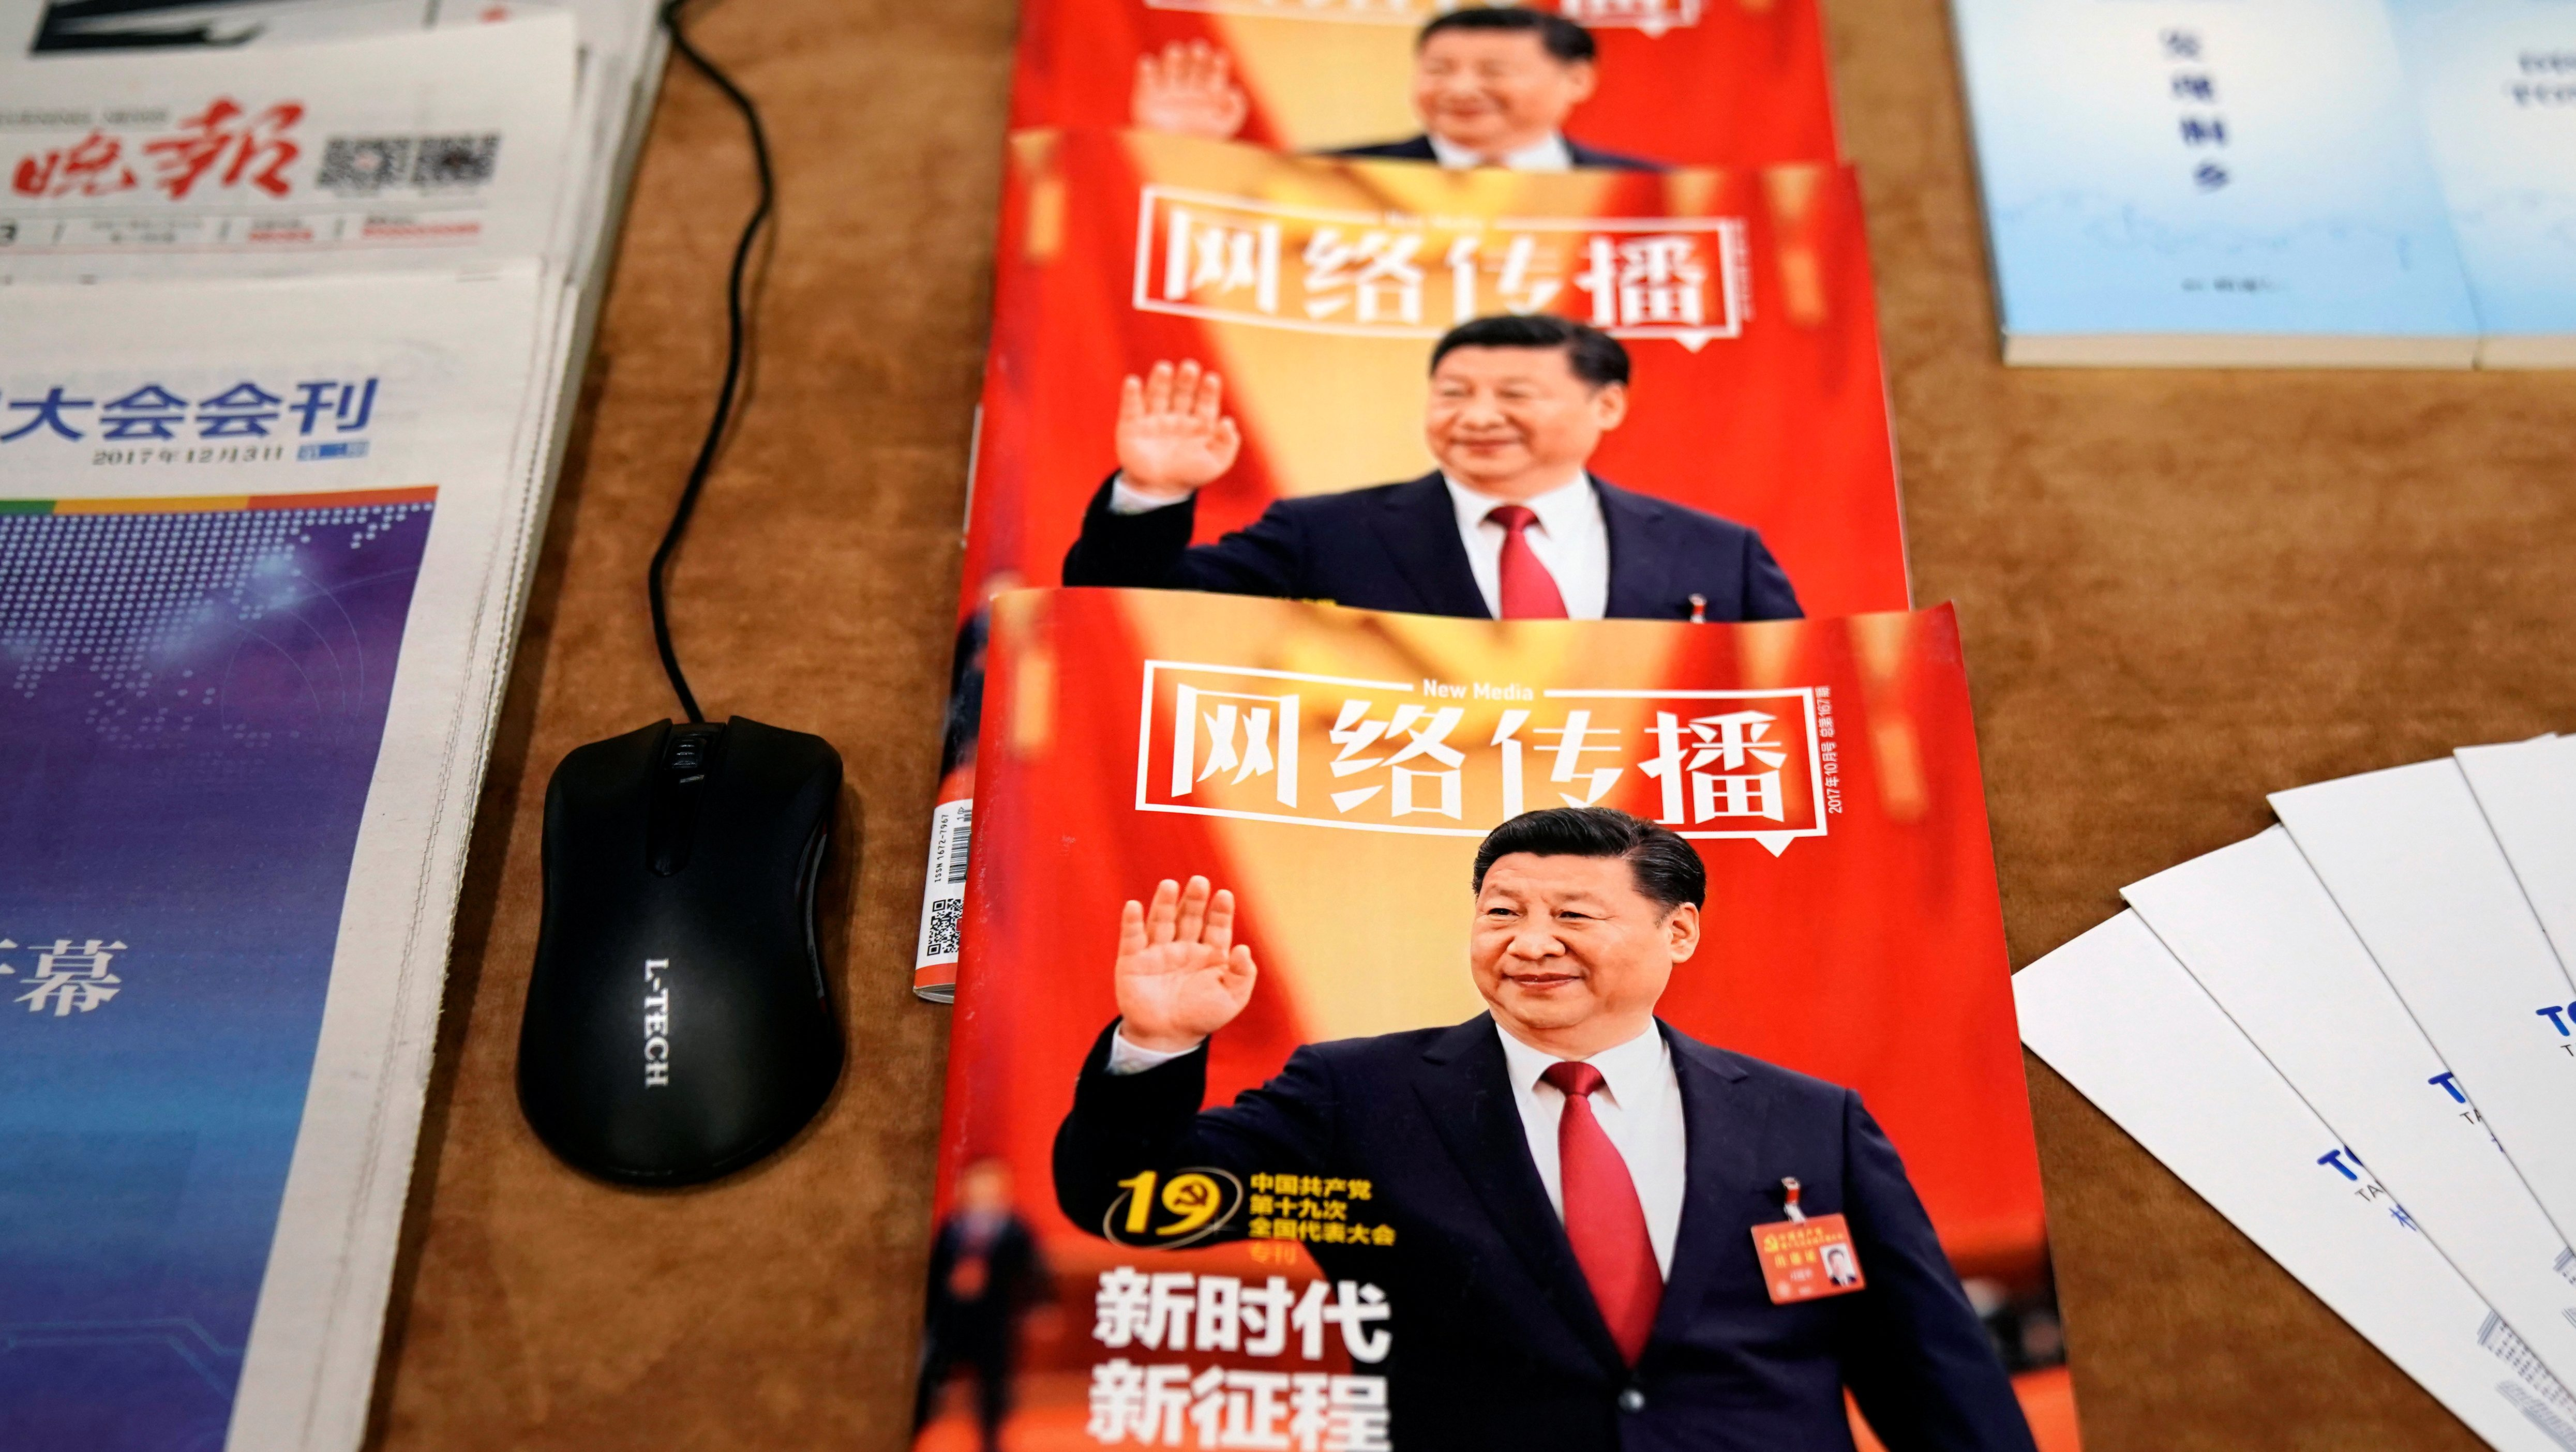 Chinese magazines featuring China's President Xi Jinping on the cover are seen during the fourth World Internet Conference in Wuzhen, Zhejiang province, China, December 3, 2017. REUTERS/Aly Song